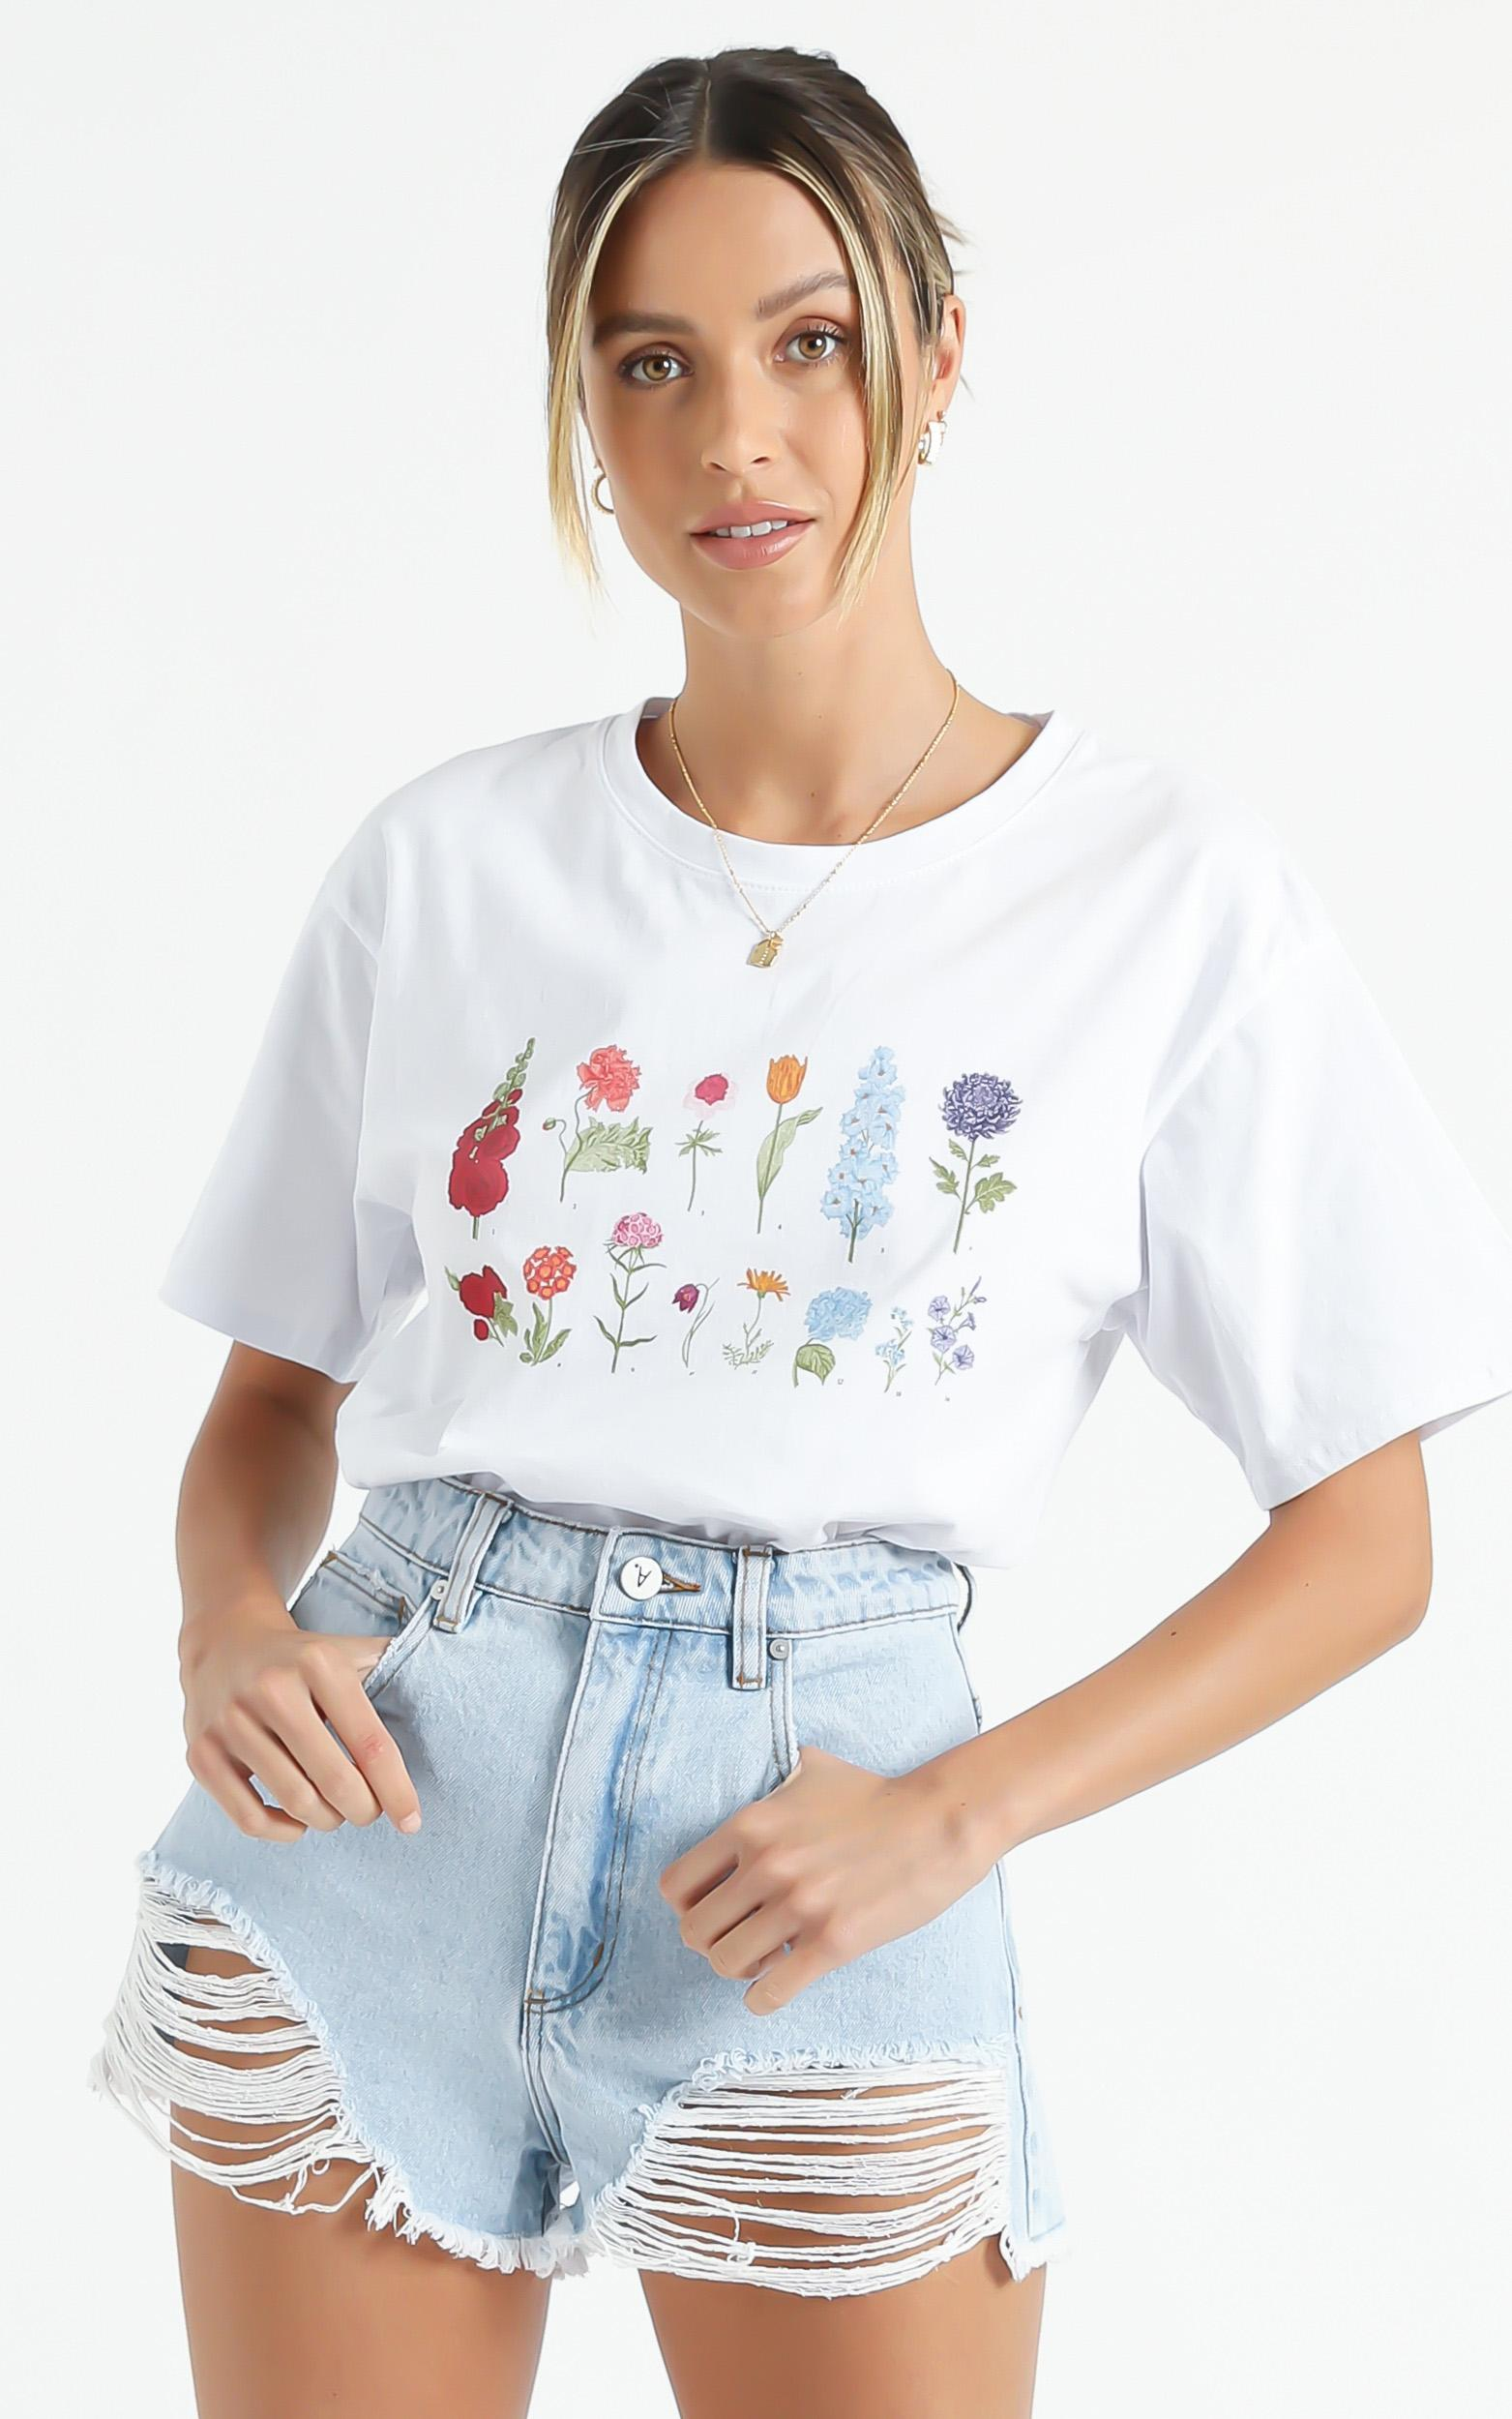 Cools Club - Sunday Tee in White Flowers - 6 (XS), White, hi-res image number null